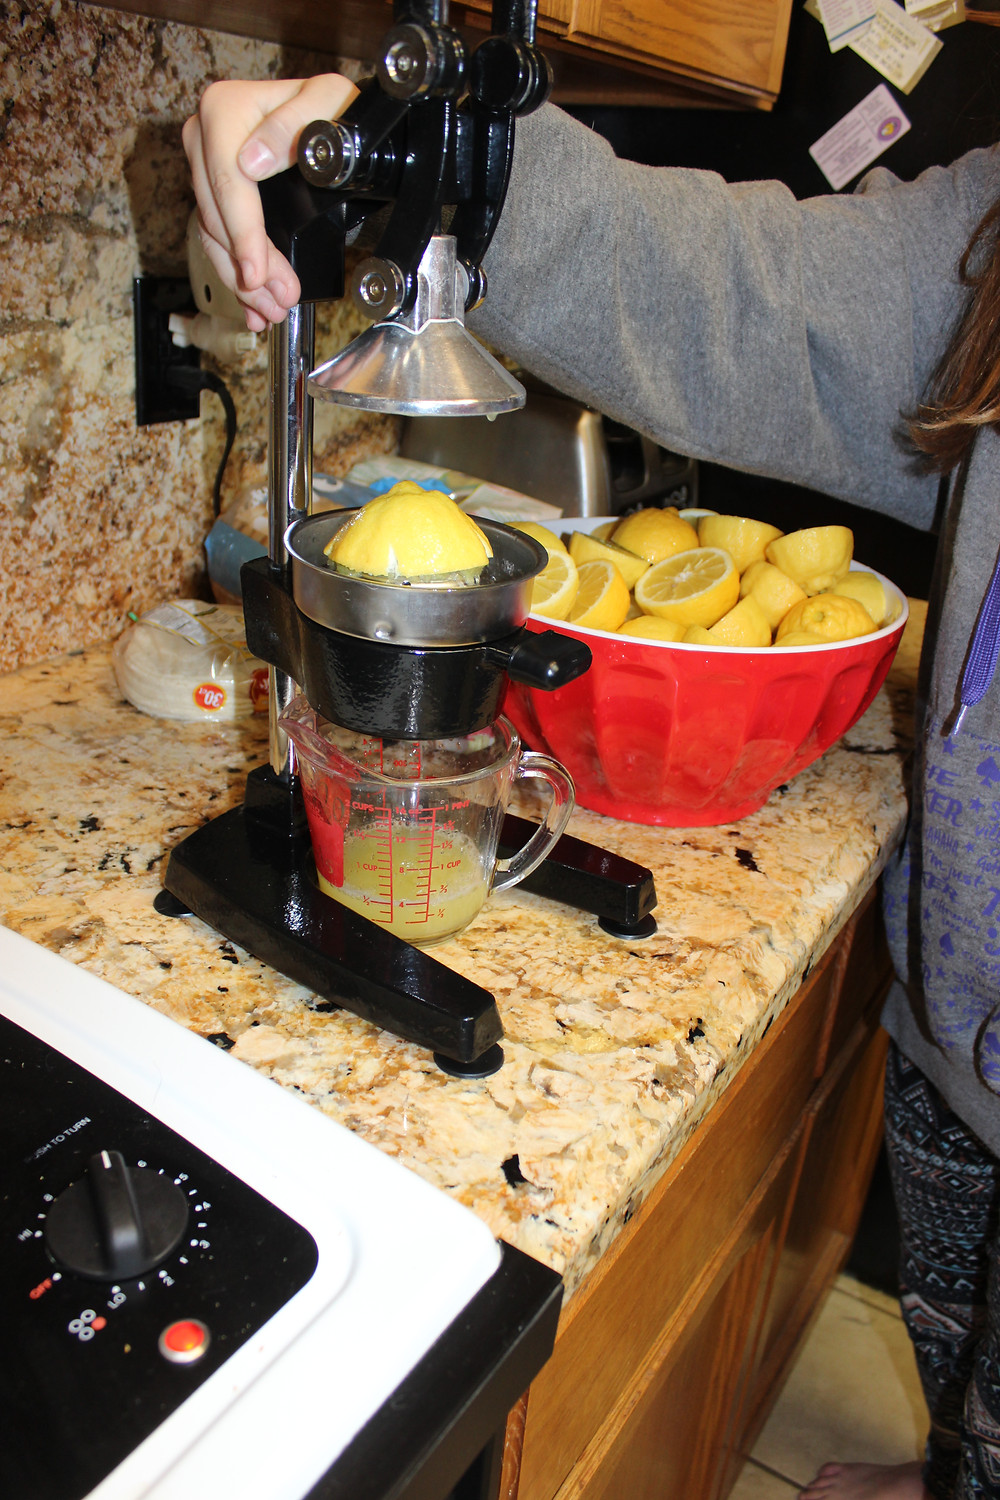 My little sister in law using the press juicer to squeeze lemons